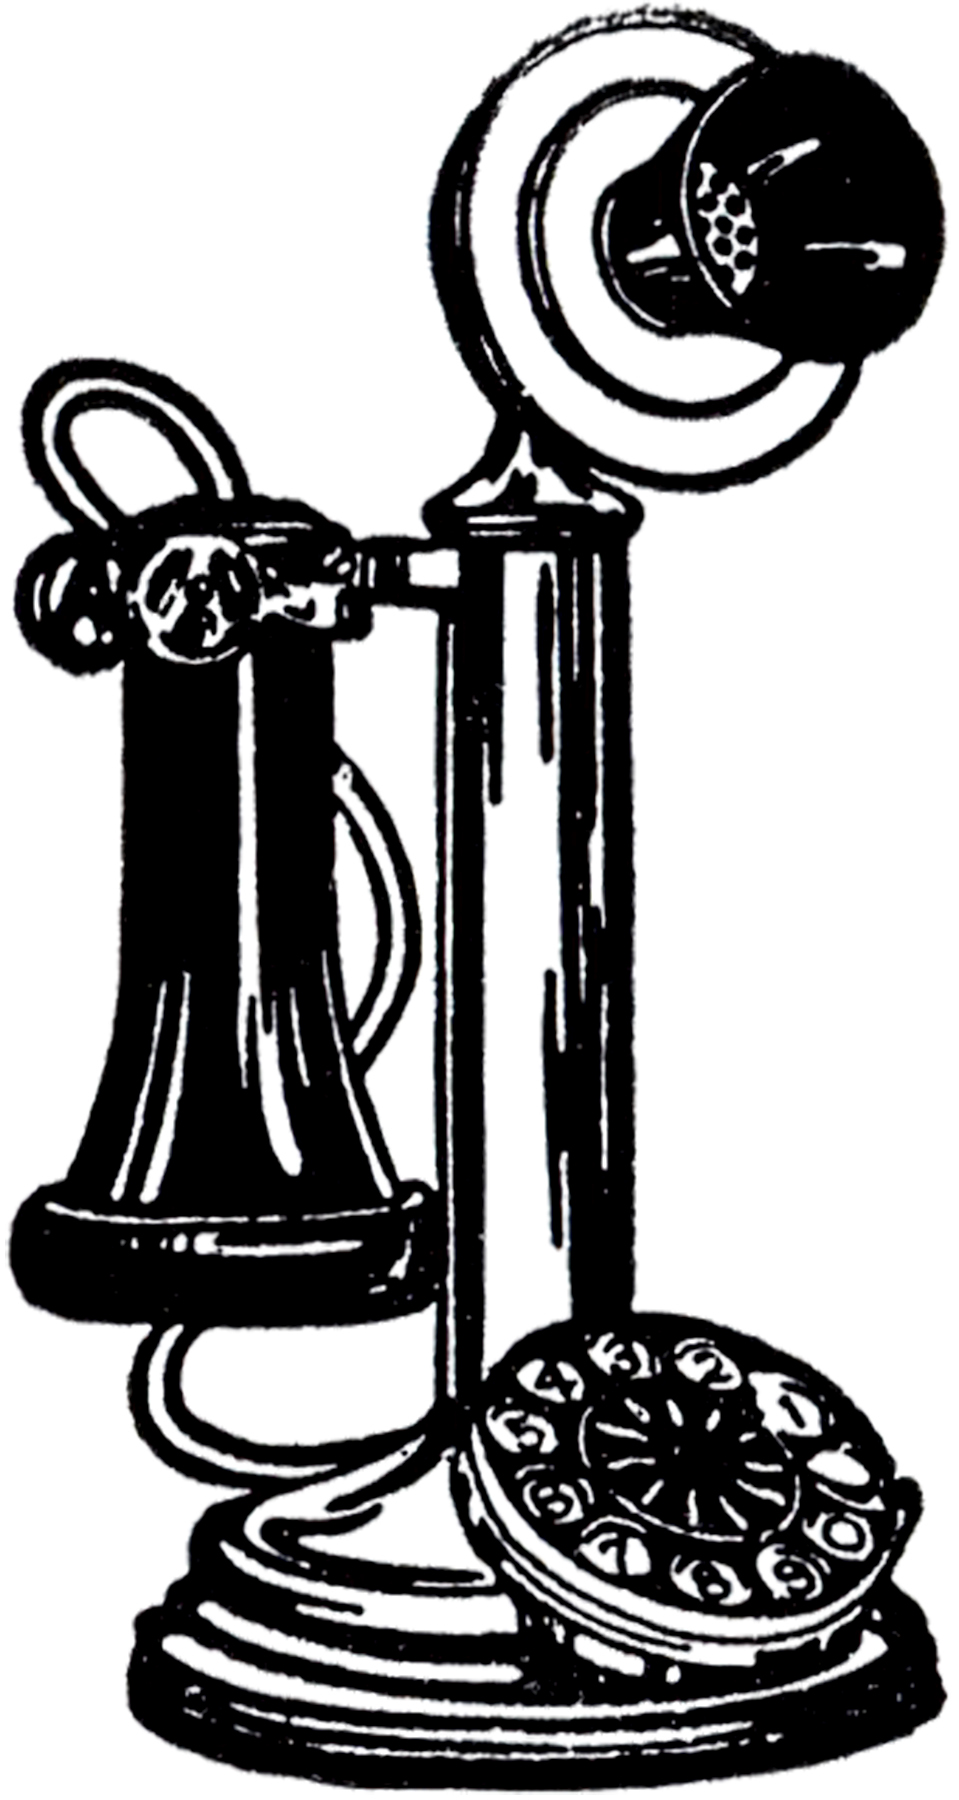 Old Fashioned Telephone Image! - The Graphics FairyOld Cell Phone Clip Art